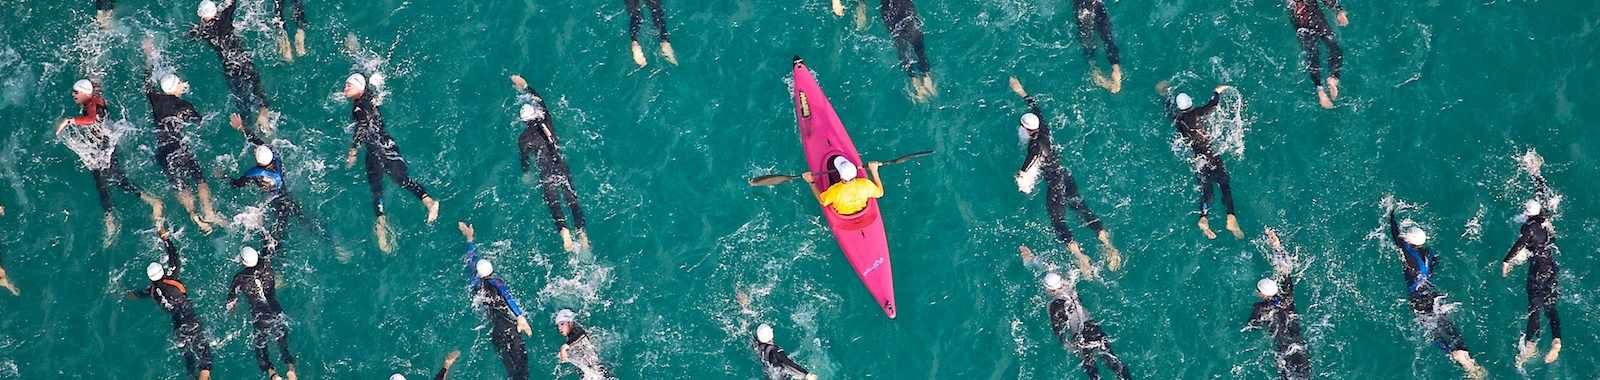 swim at Ironman Austria. from helicopter.Ironman Austria long day picturing friends and pro's for Triangle.